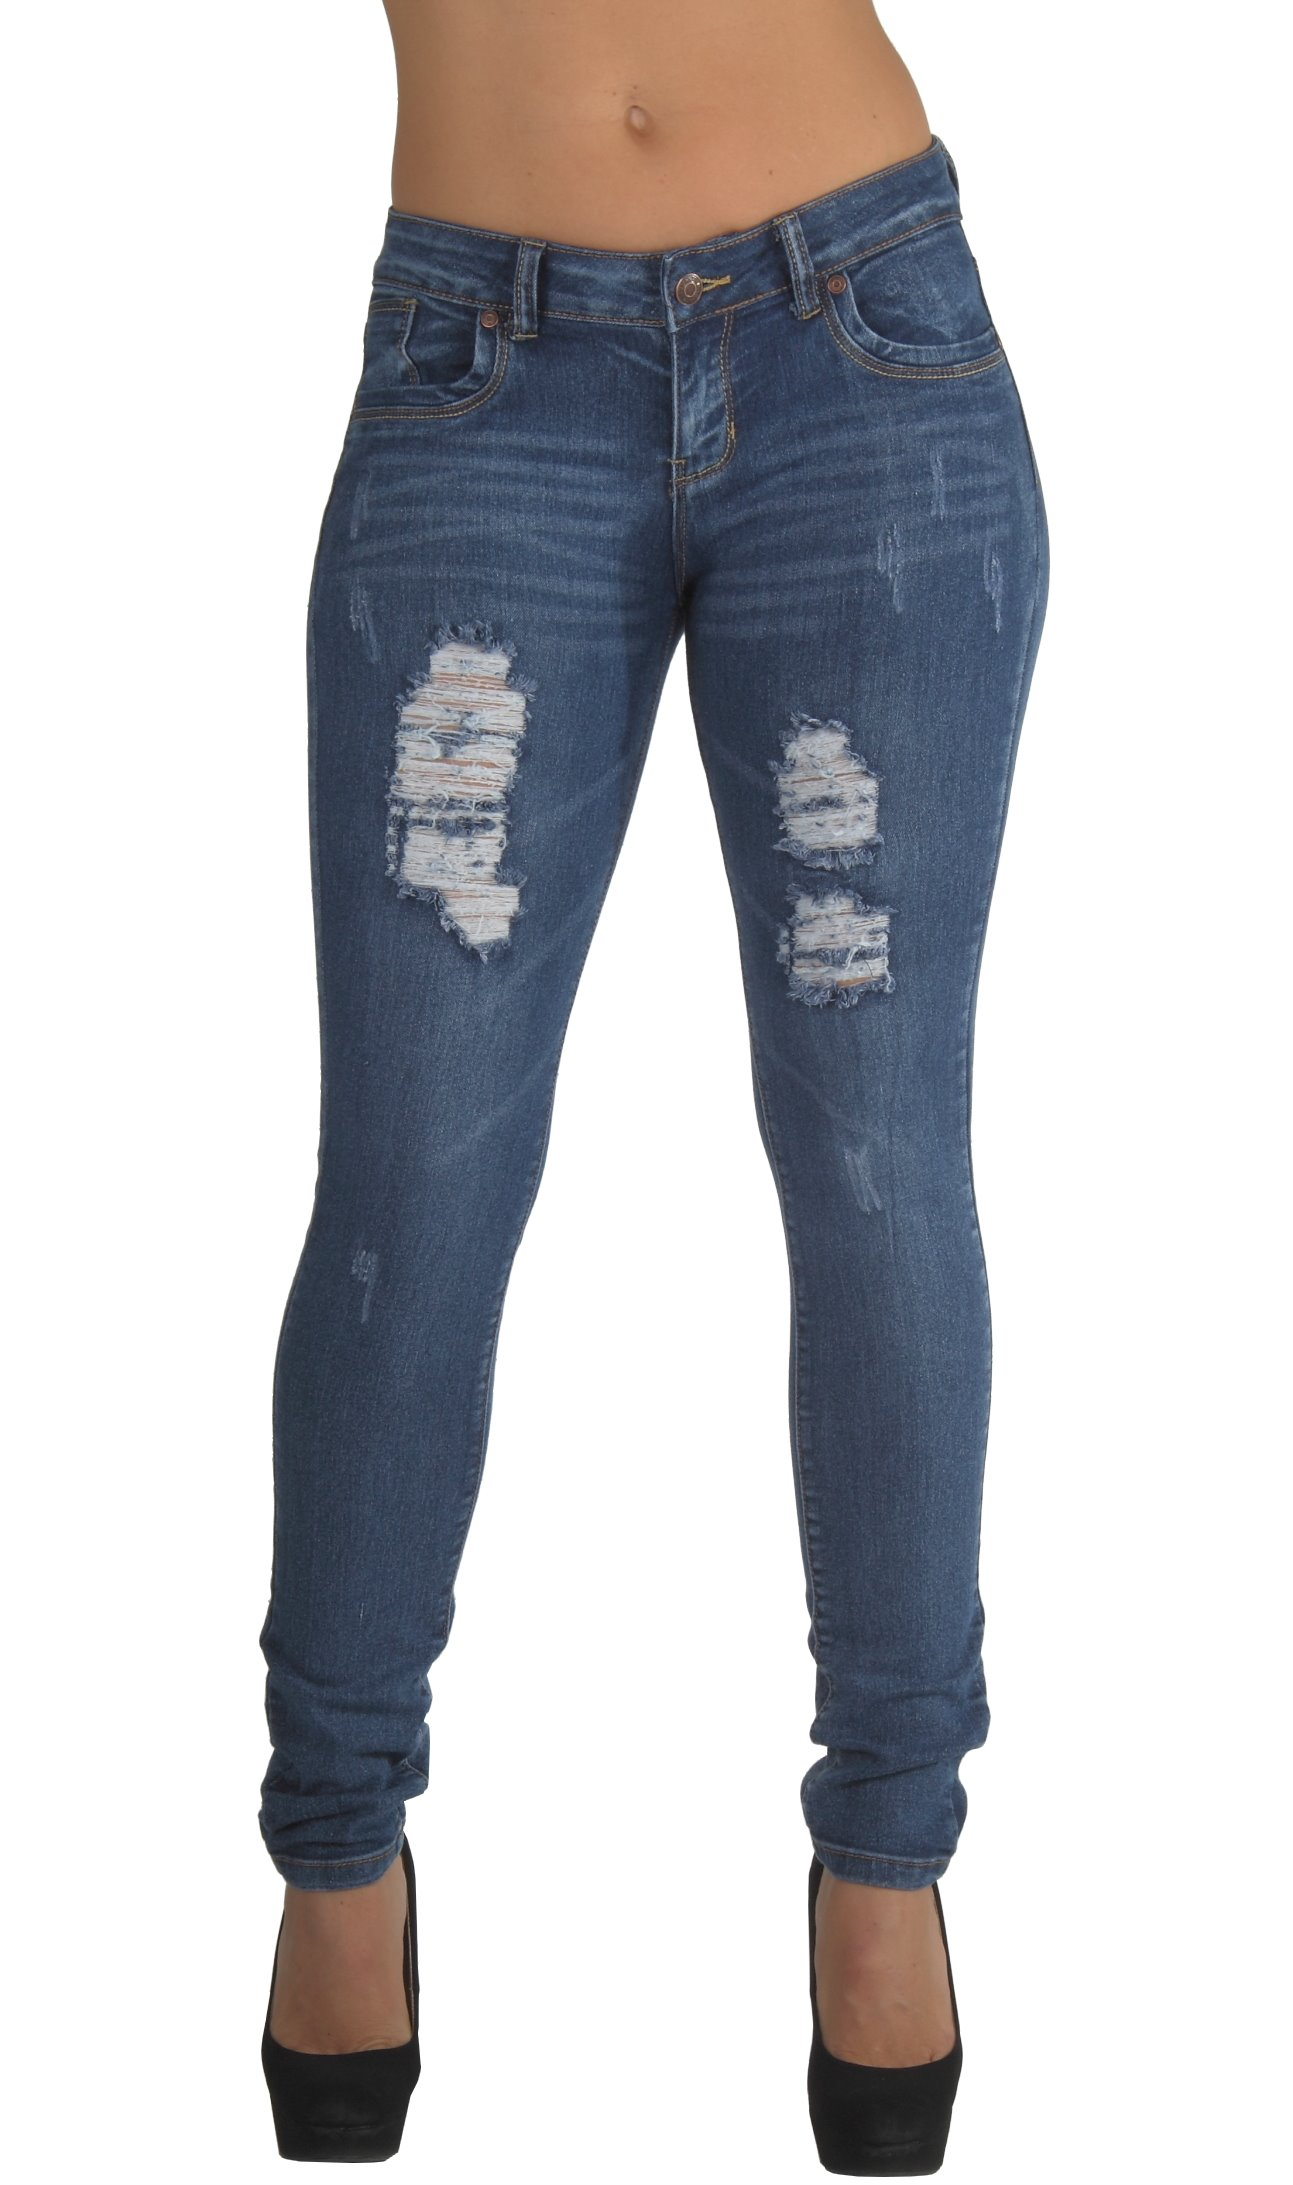 Style CH032P - Plus Size, Classic, Ripped Distressed, Destroyed Skinny Jeans